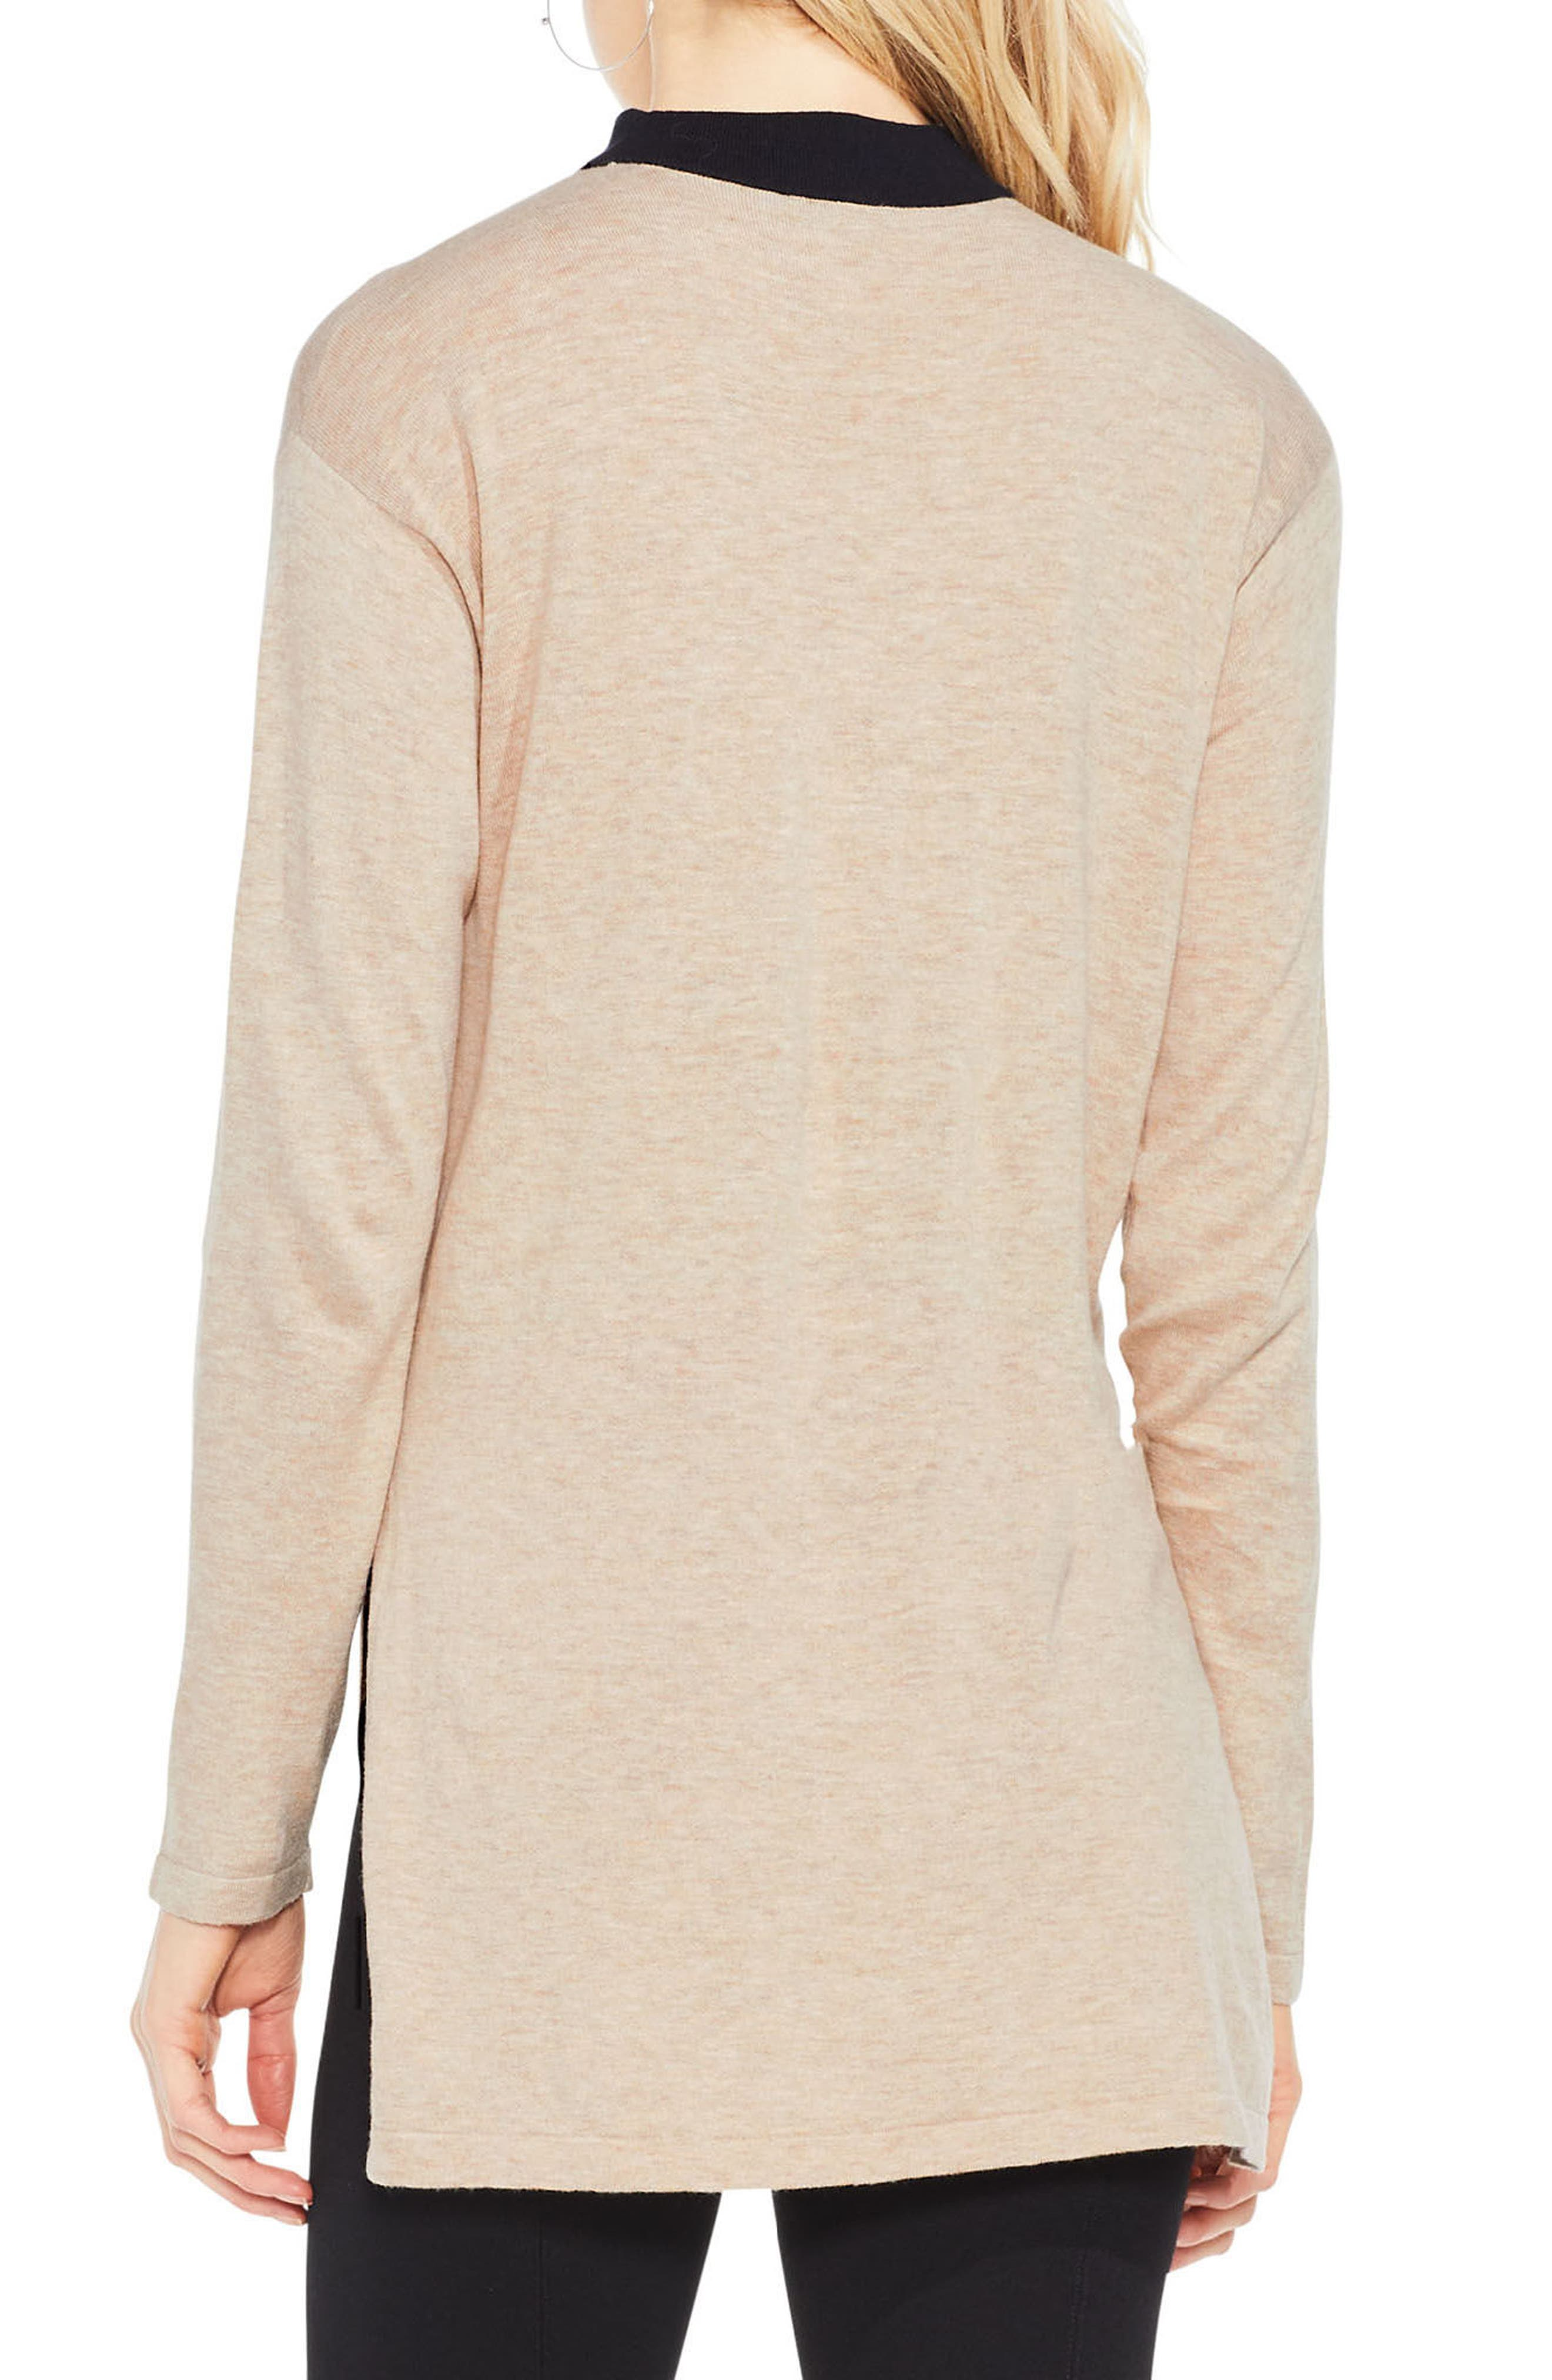 Choker V-Neck Sweater,                             Alternate thumbnail 2, color,                             Warm Camel Heather